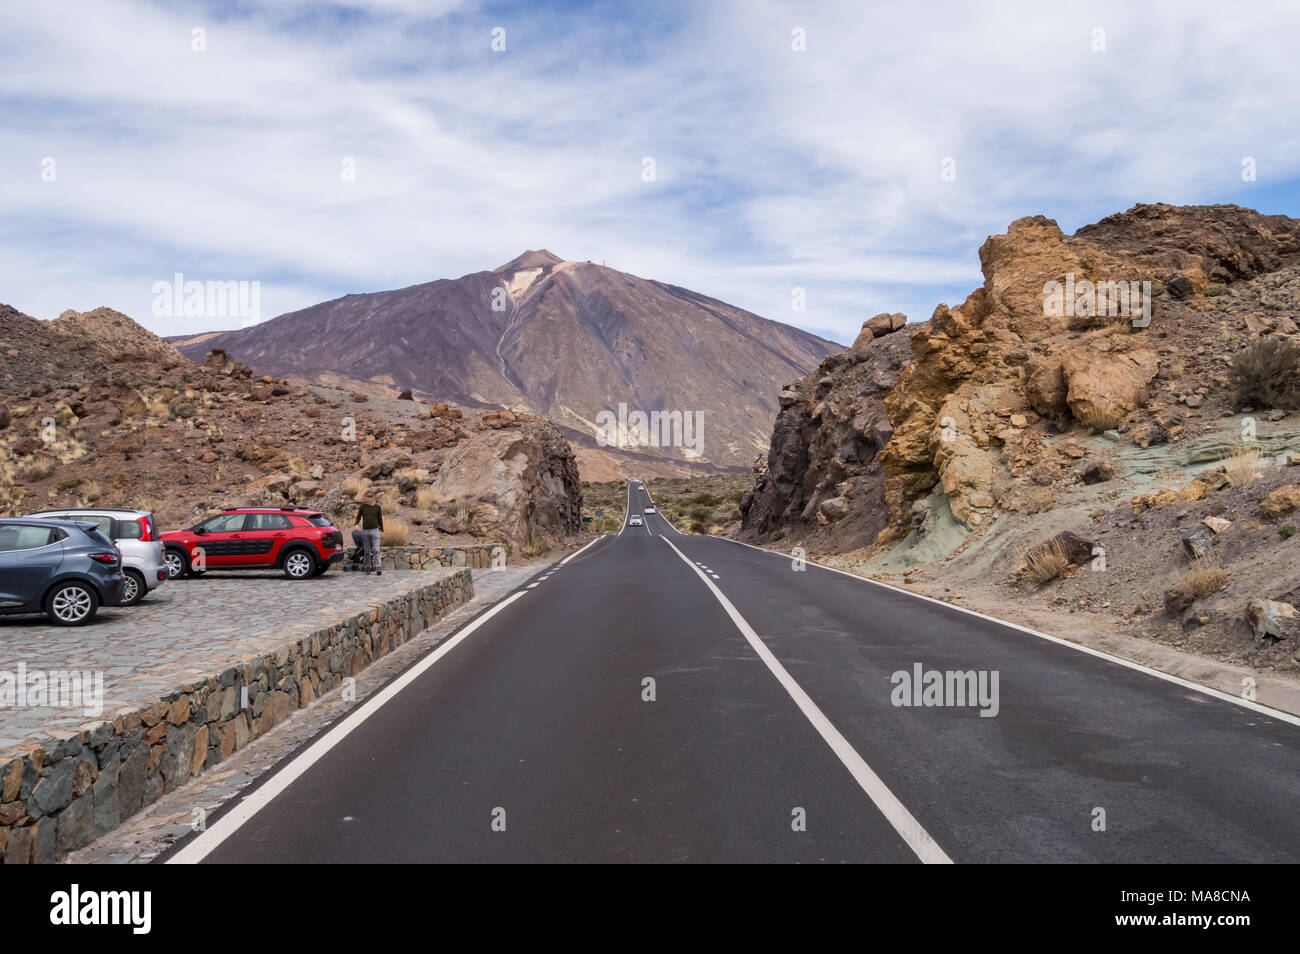 TF21 road on the green rocks of Los Azulejos towards the Teide volcano in Tenerife, Spain - Stock Image